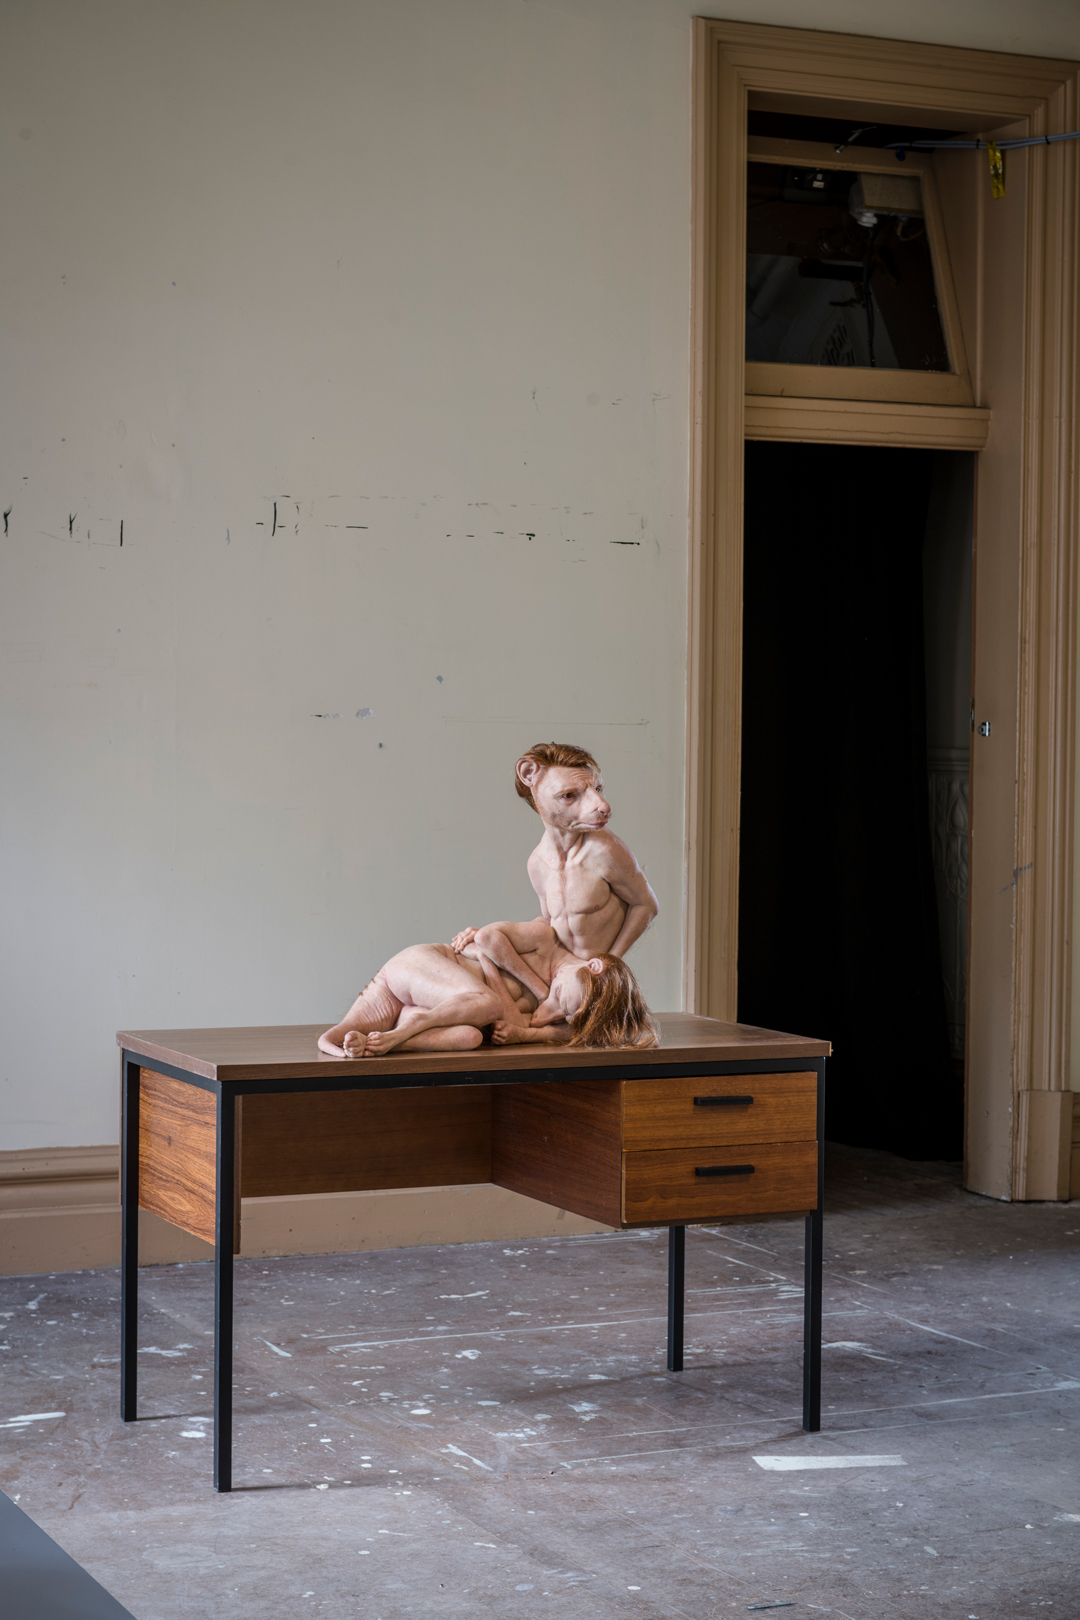 While She Sleeps by Patricia Piccinini displayed on a discarded desk from the station's rooms. Photo credit: Eugene Hyland